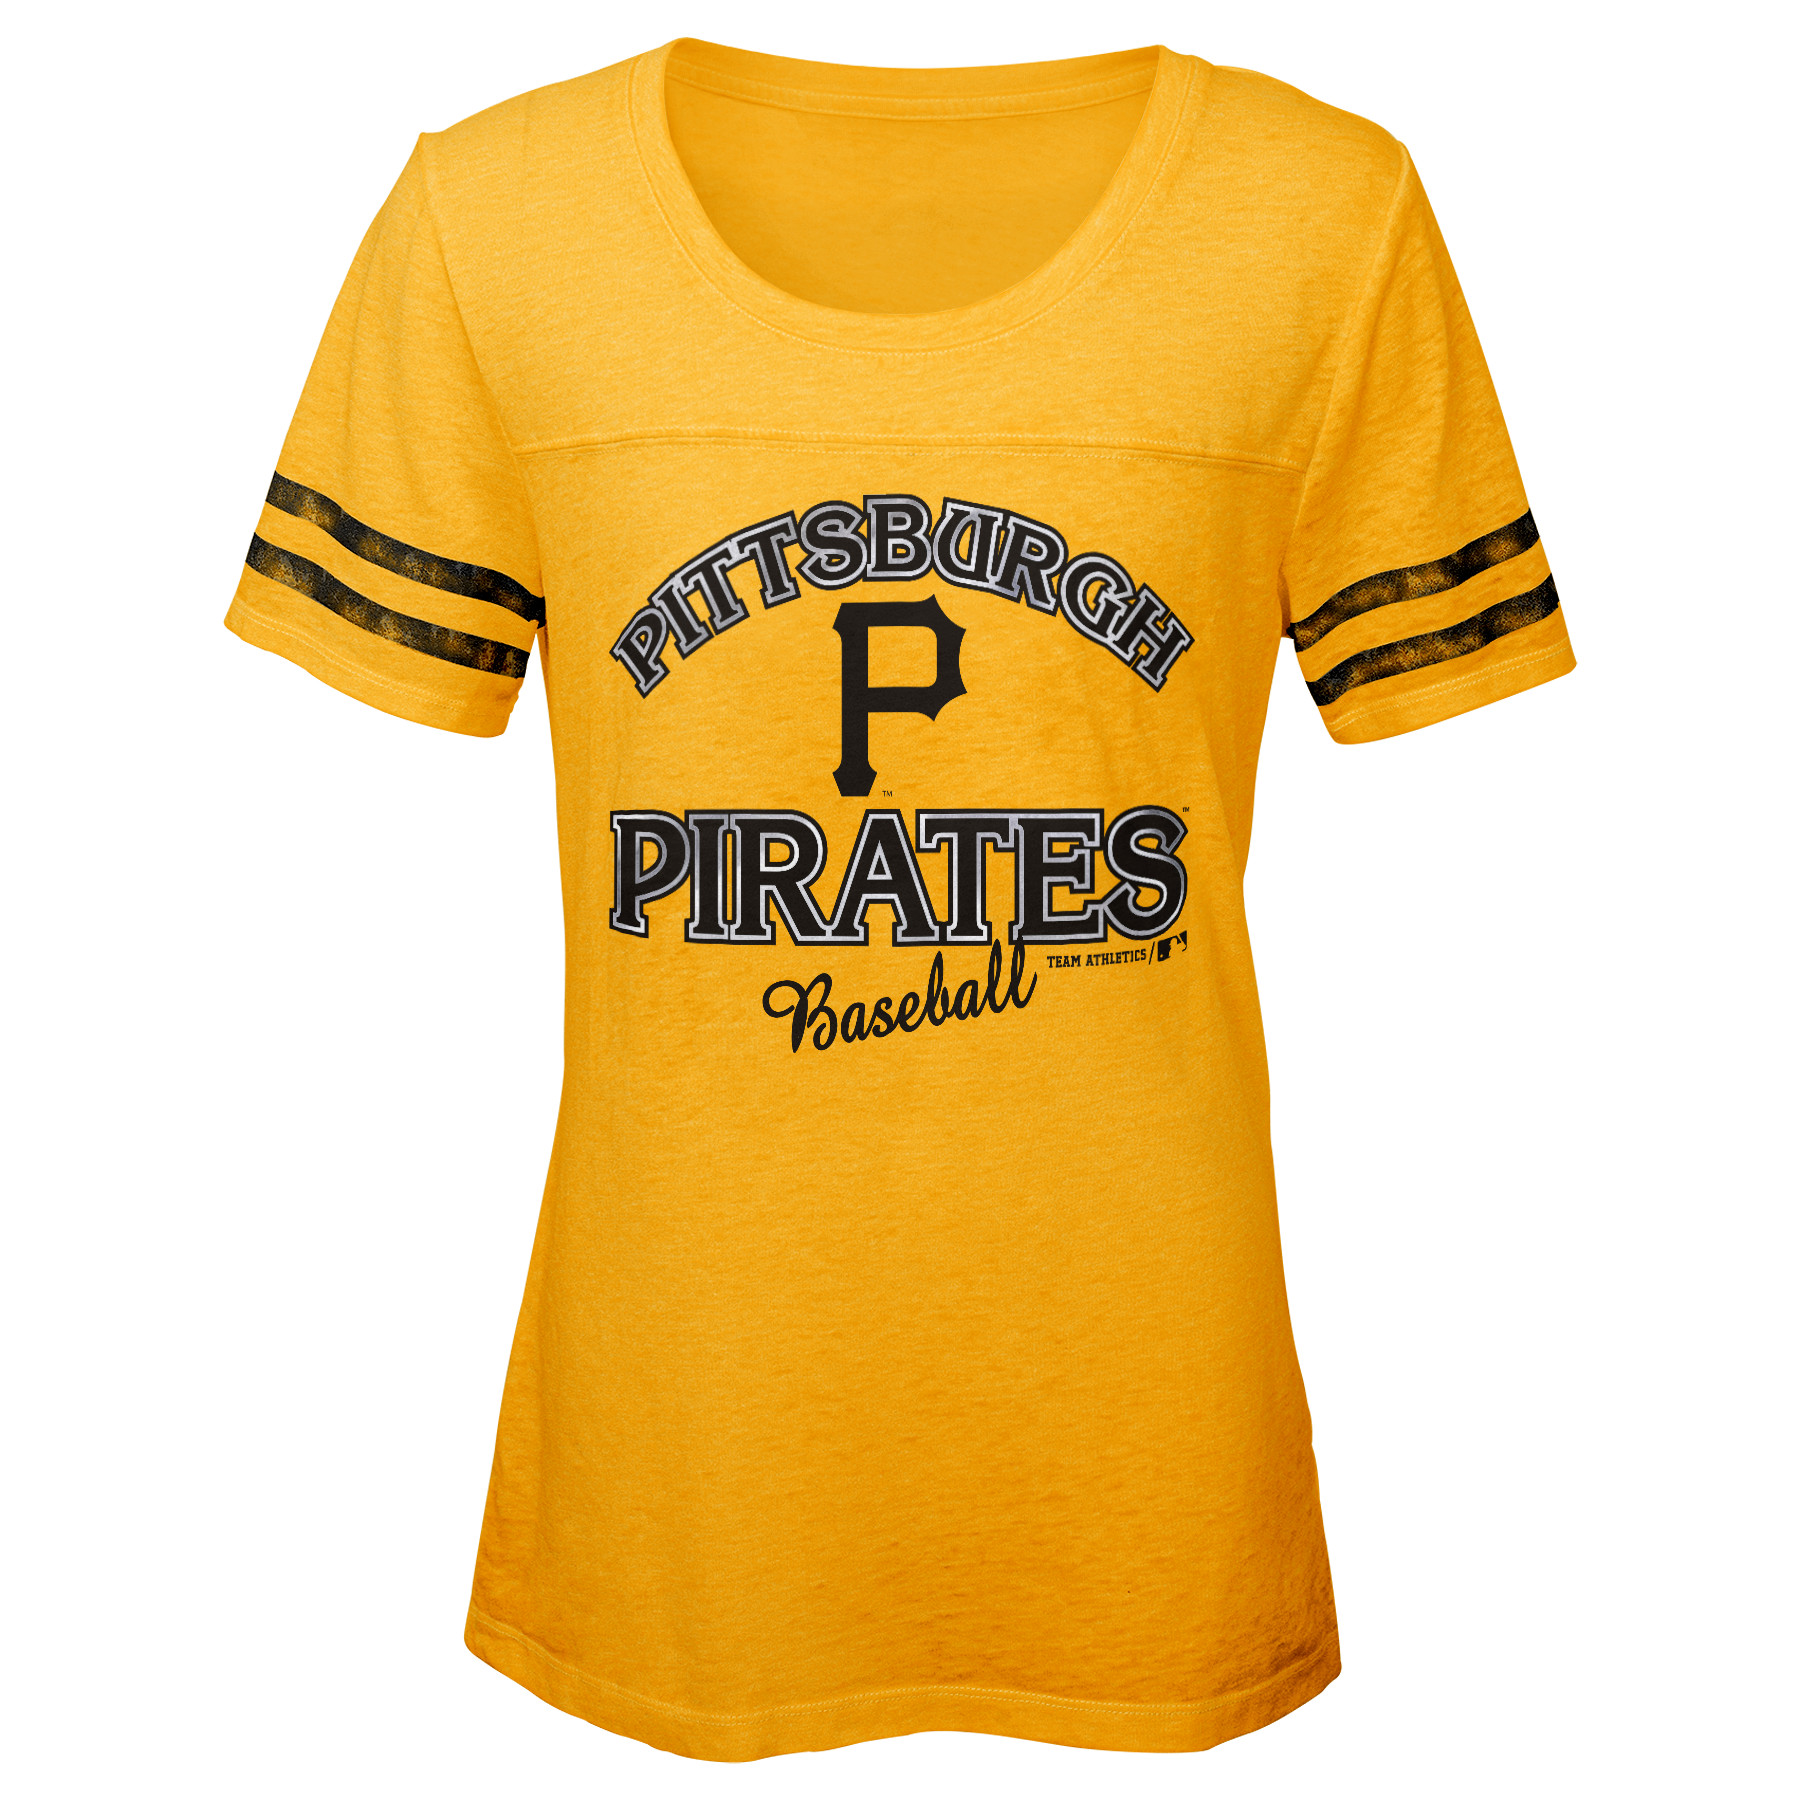 MLB Pittsburgh PIRATES TEE Short Sleeve Girls Fashion 60% Cotton 40% Polyester Alternate Team Colors 7 - 16